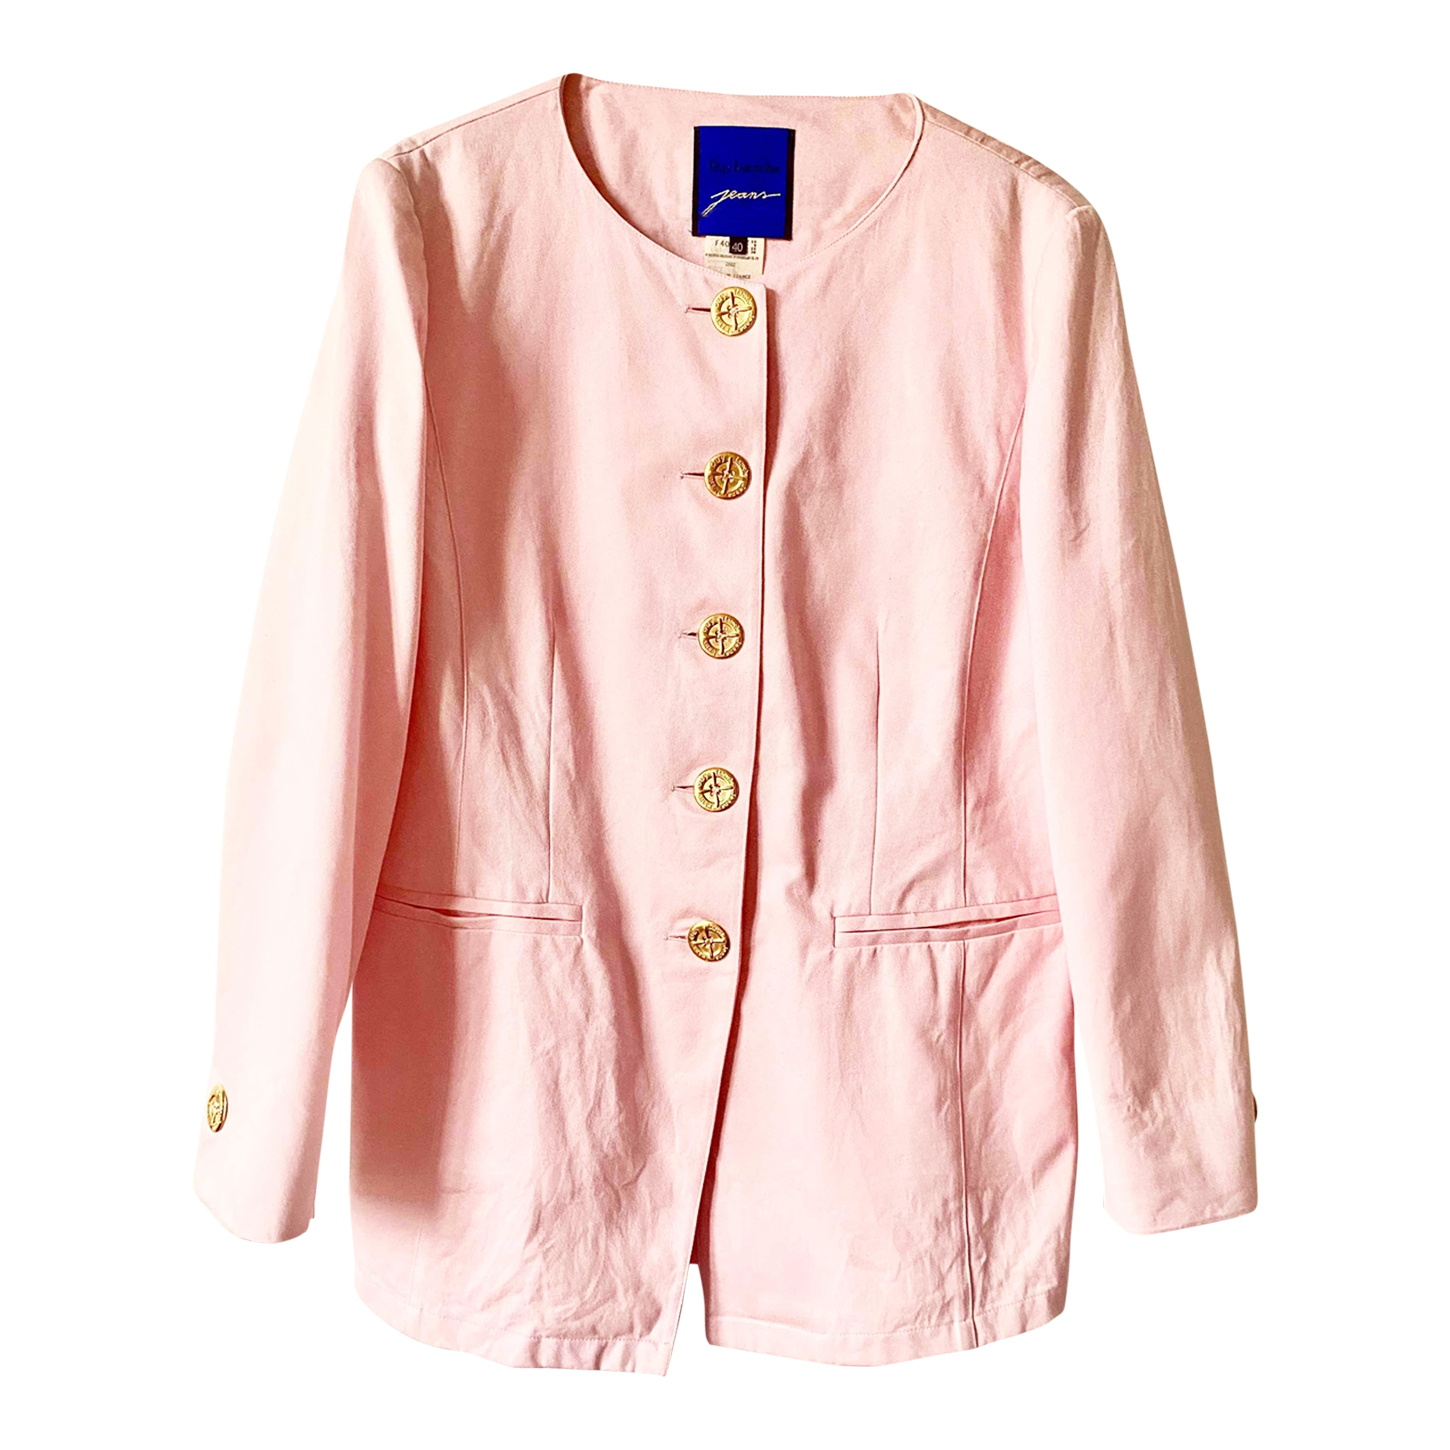 Veste Guy Laroche rose